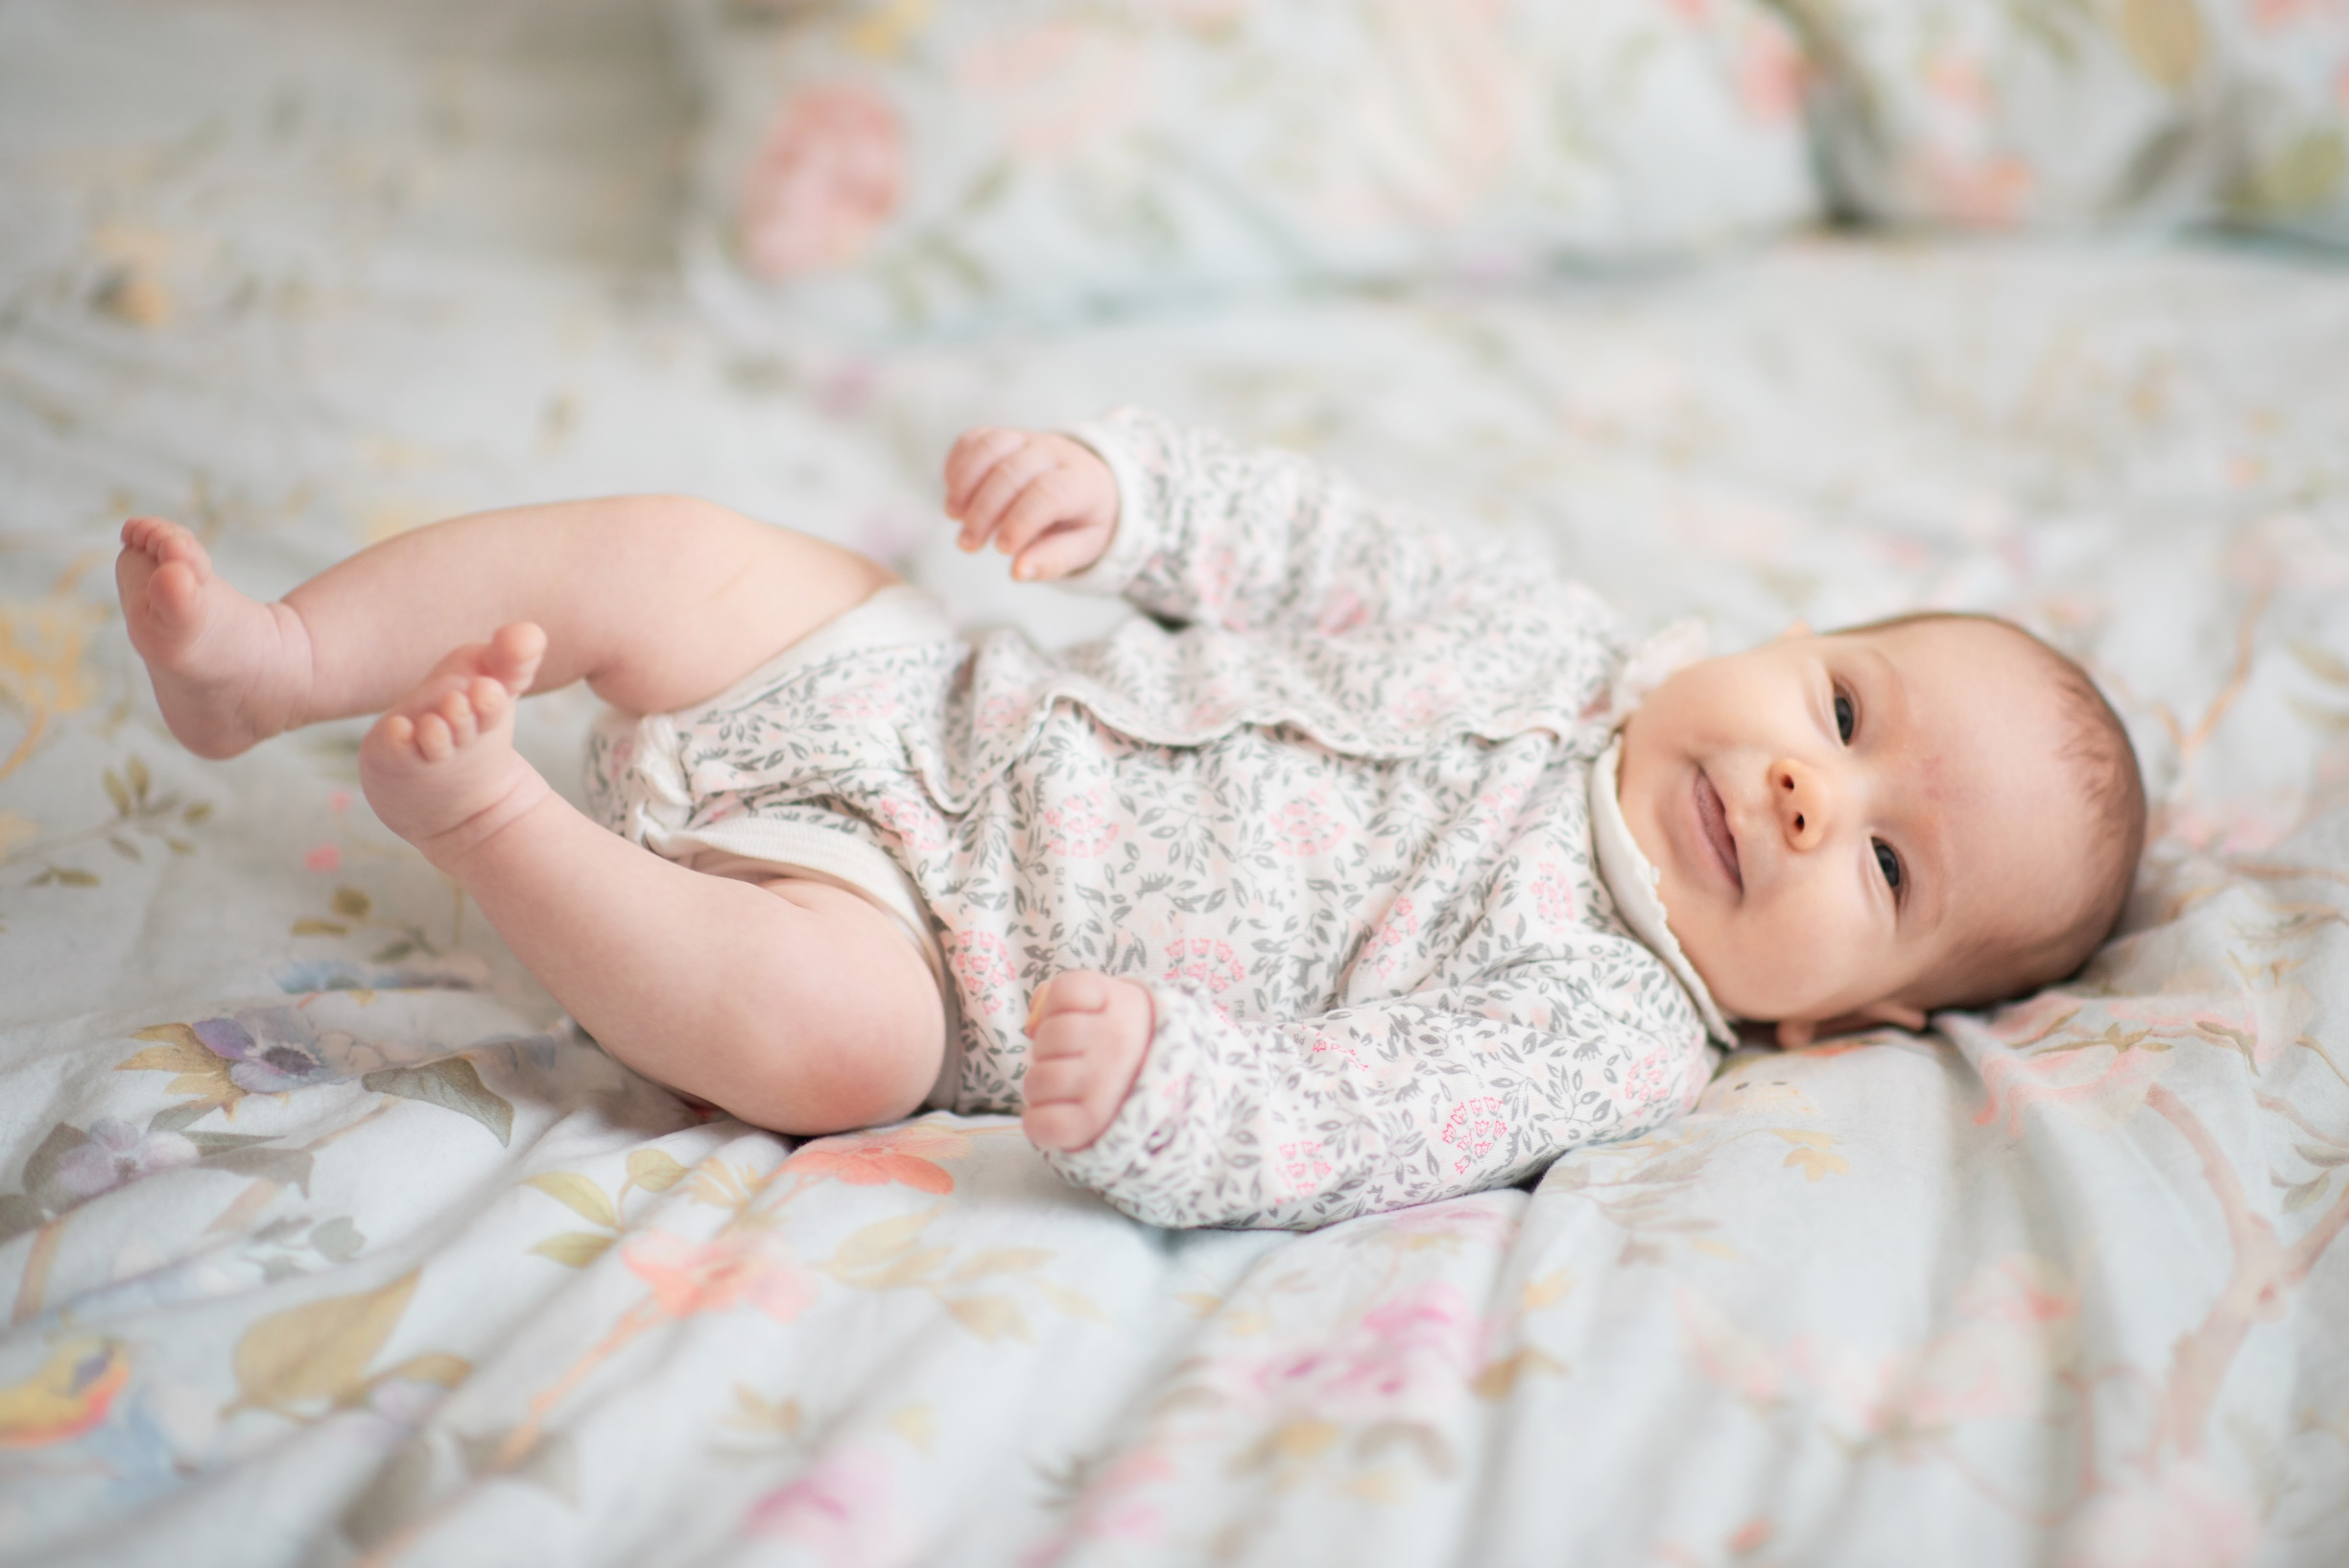 NEWBORN & BABY PHOTOGRAPHY - Perfectly soft and classical pictures of your baby